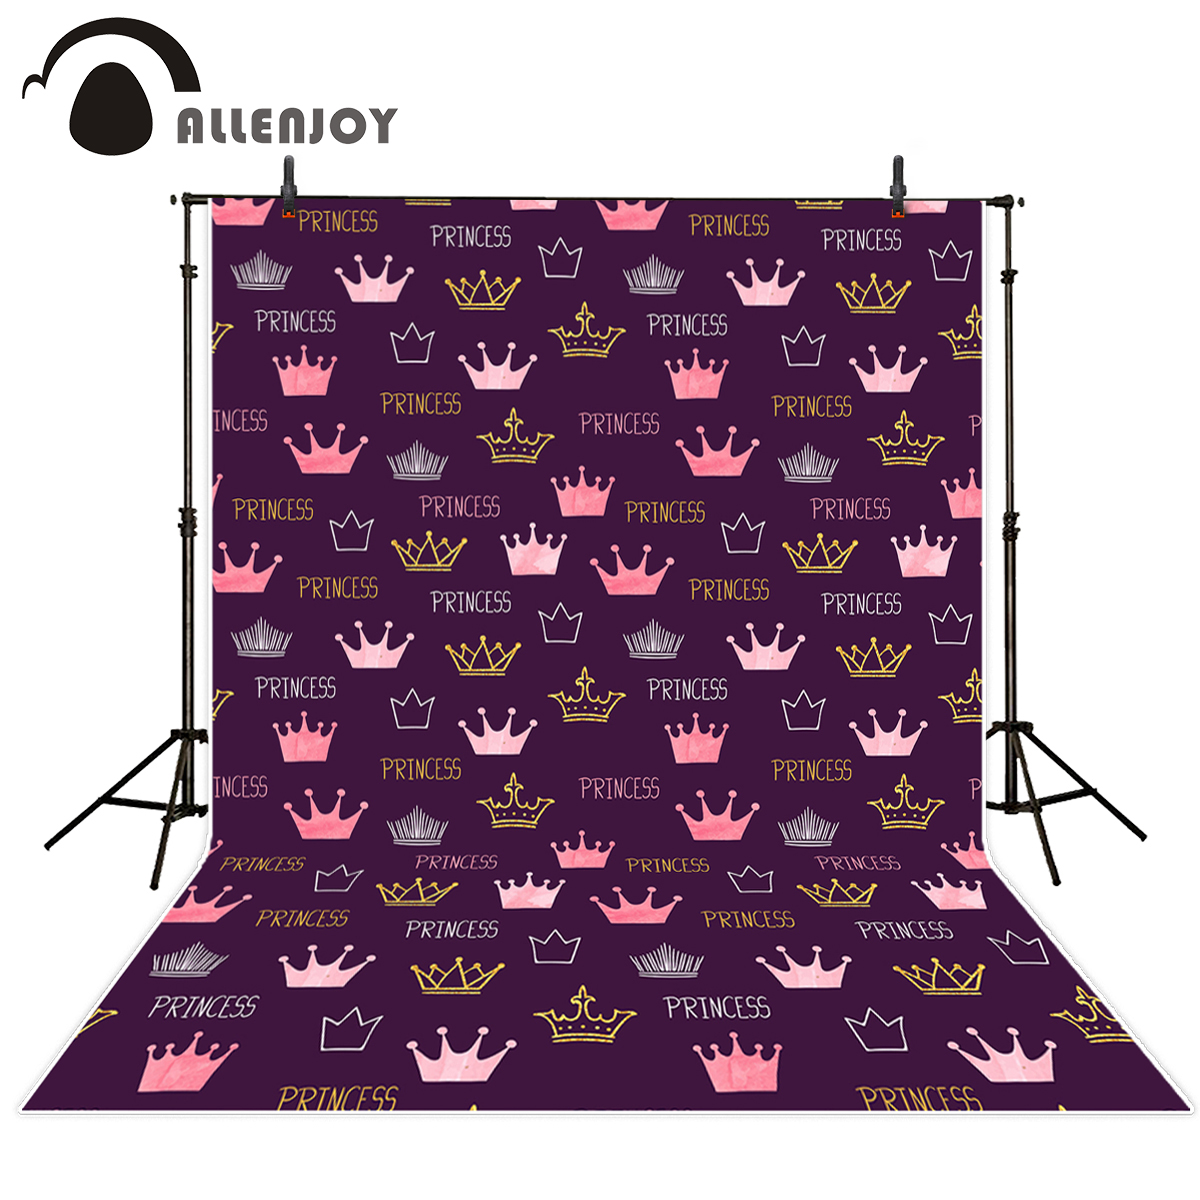 Allenjoy photography backdrop princess purple pink and gloden crown birthday photo background vinyl backgrounds for photo studio fabric birthday party backdrop balloon and paper craft photography backdrop for photo studio photography background s 2132 c